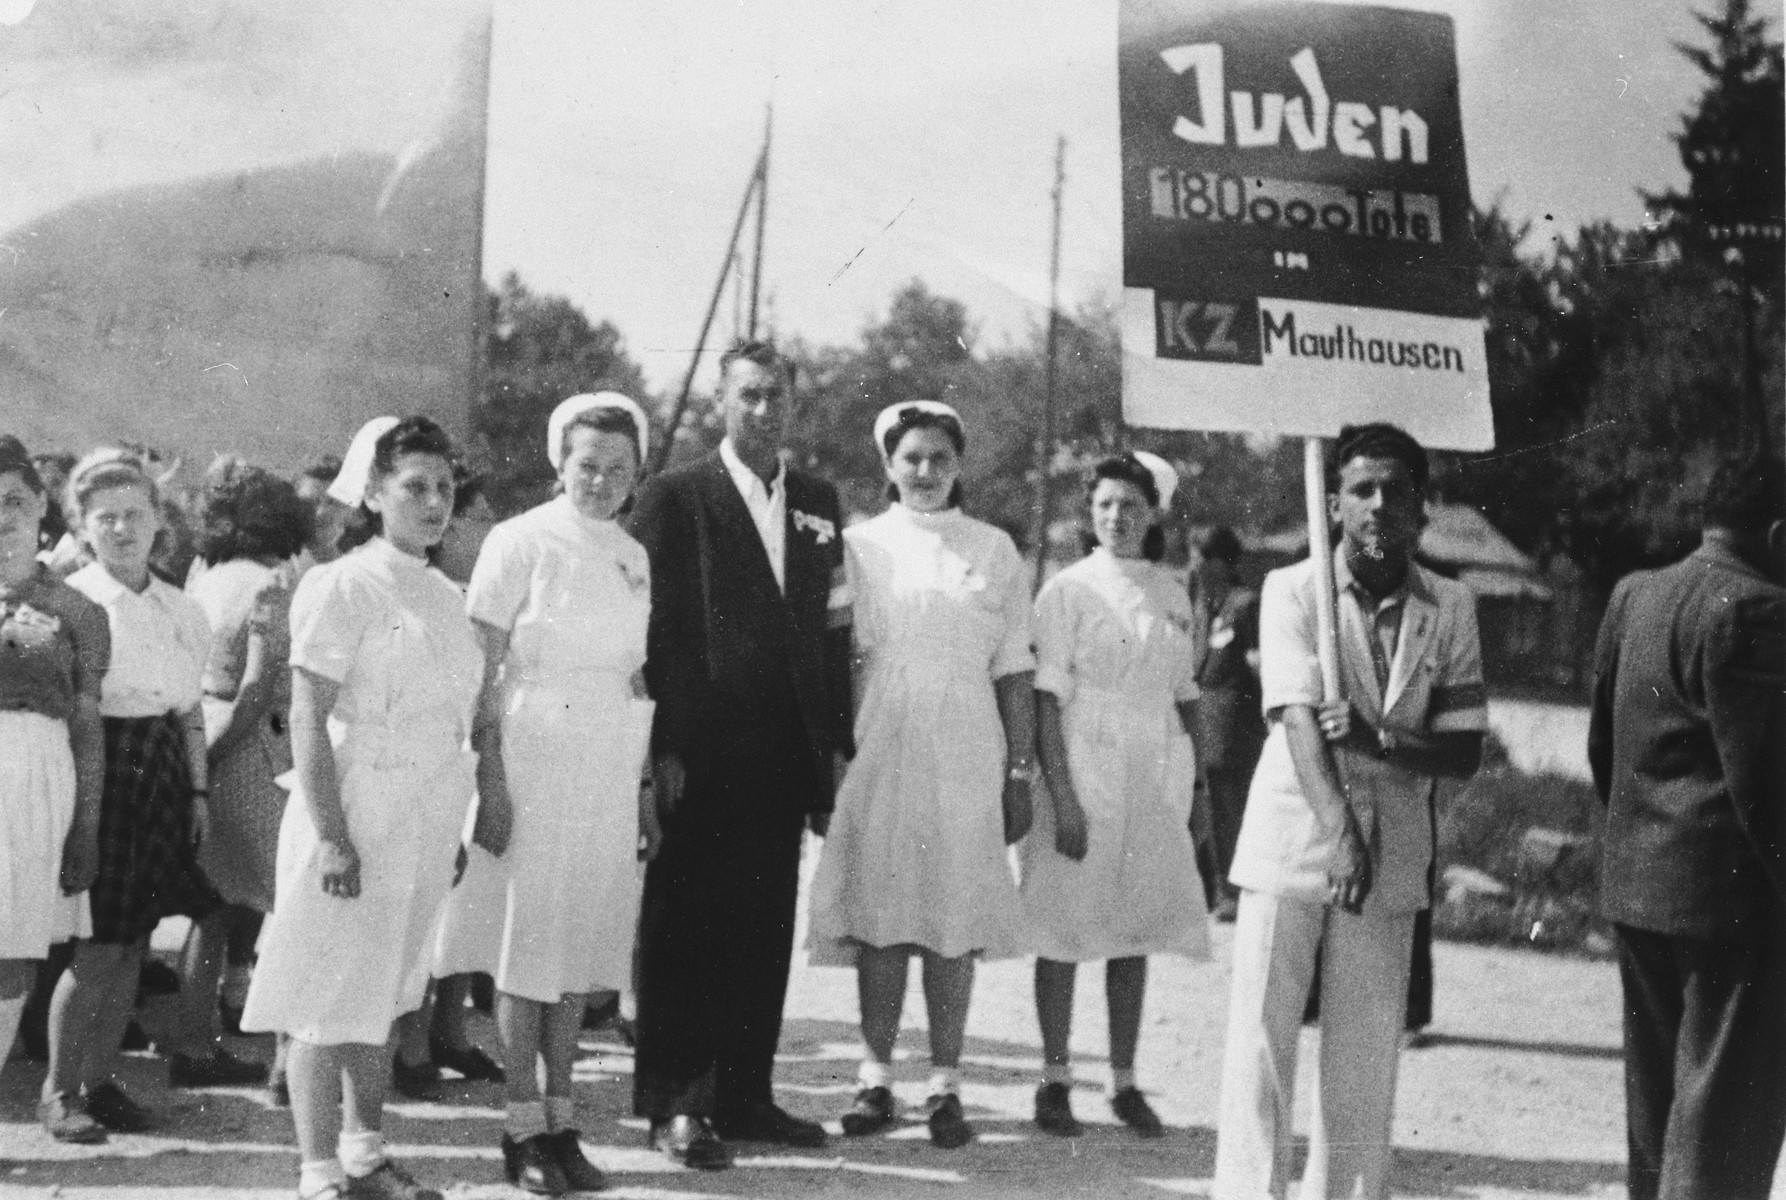 Group portrait of Jewish DPs at a commemoration for the 180,000 Jewish victims of the Mauthausen concentration camp.  Among those pictured are Dr. Reinert and four nurses.